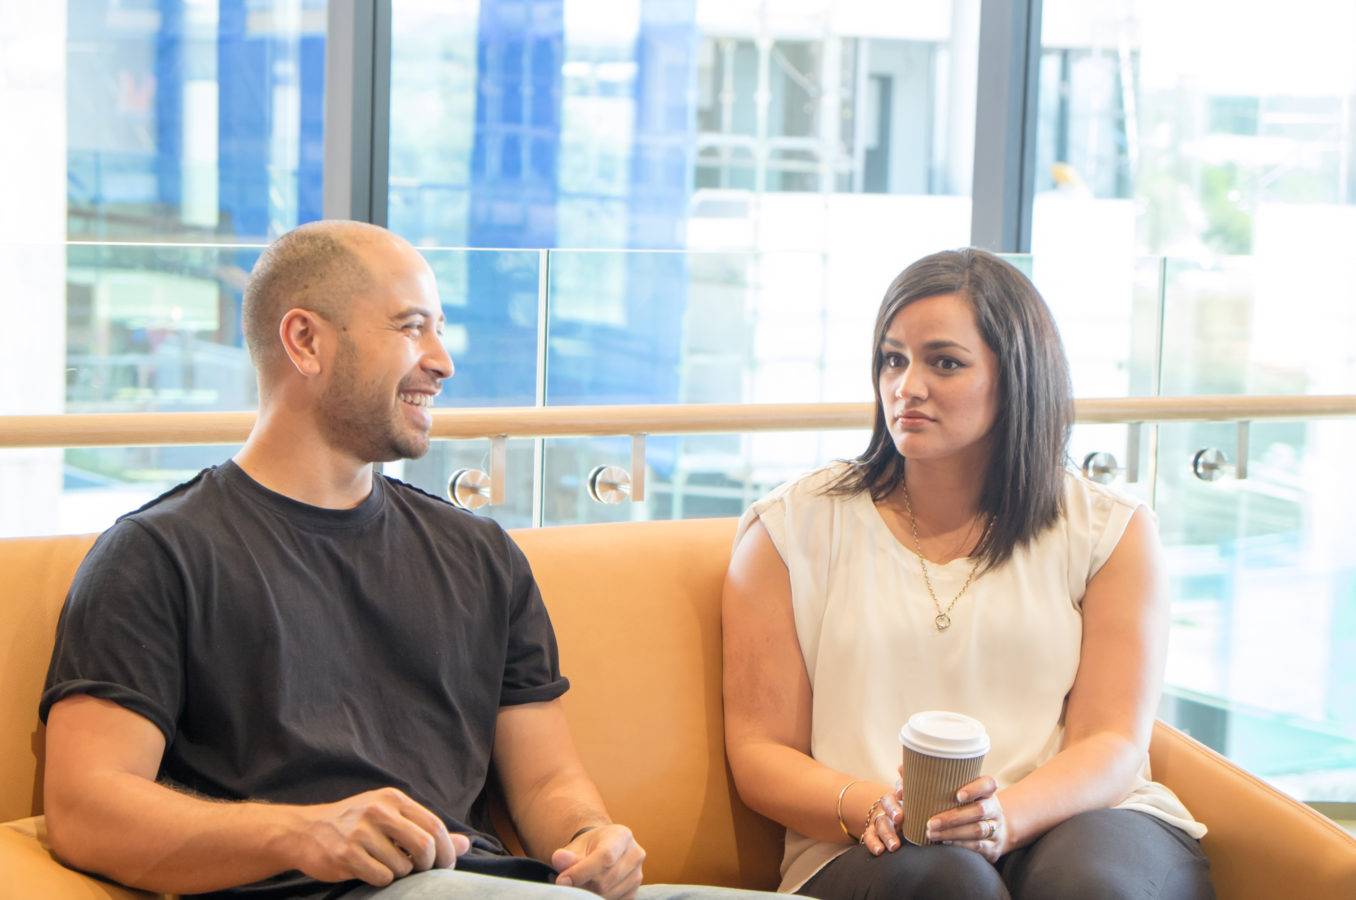 Dealing With Inappropriate Personal Stories at Work – Your Top Tips